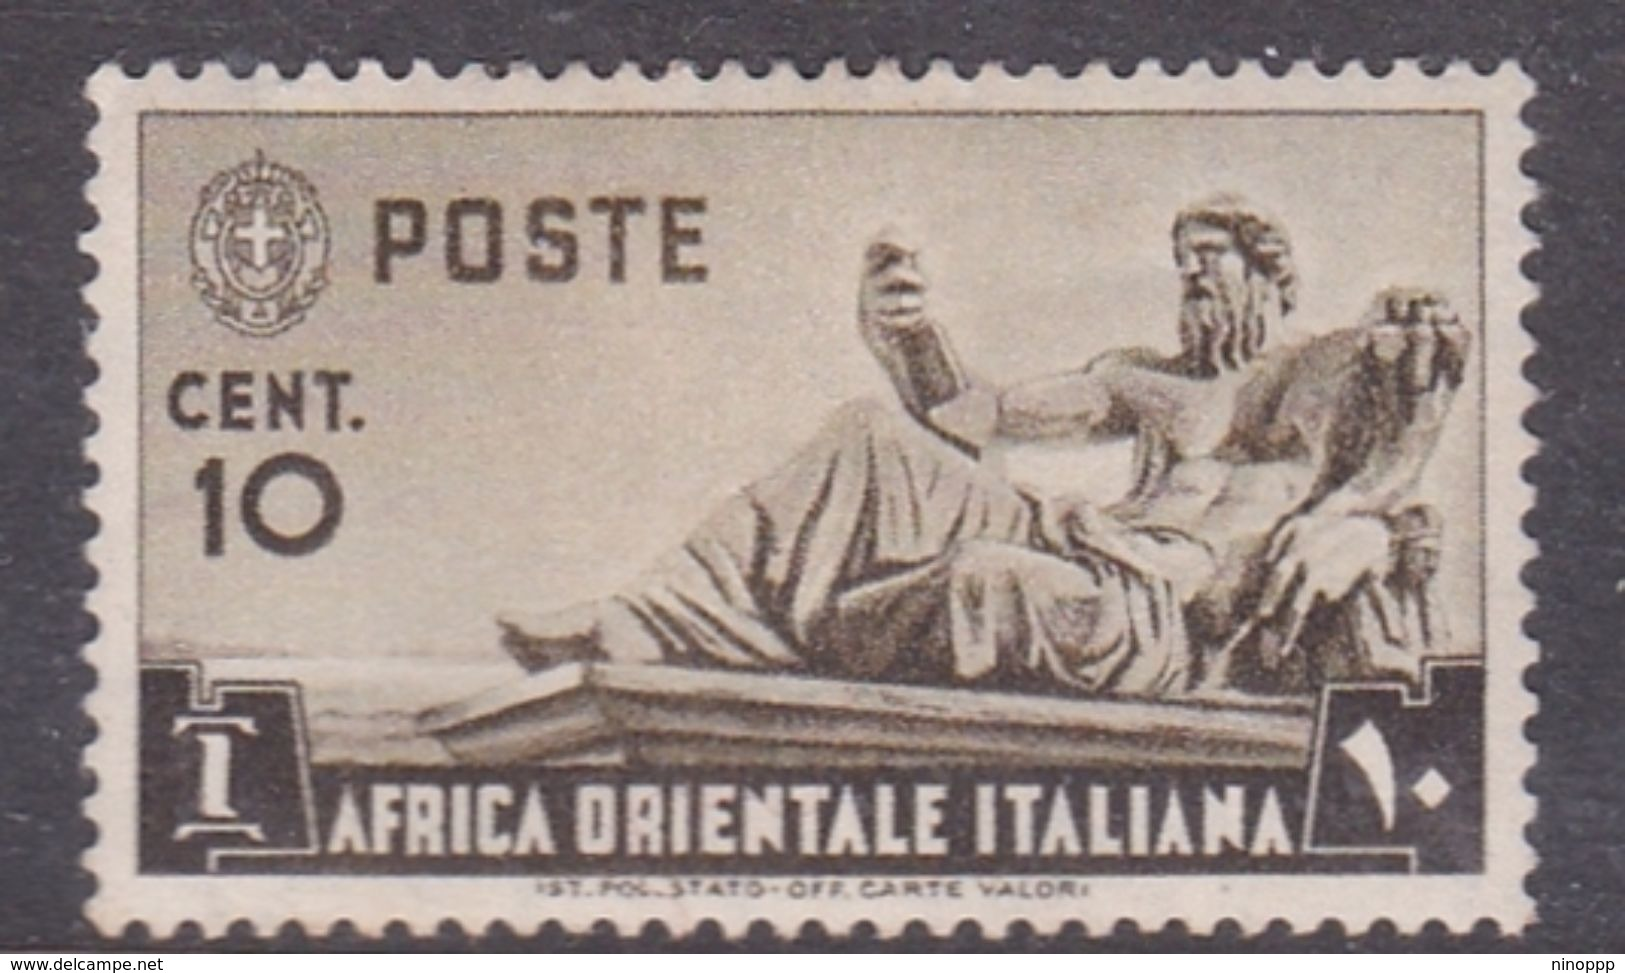 Italy-Colonies And Territories-Italian Eastern Africa S4 1938 10c Olive Brown MH - Italy